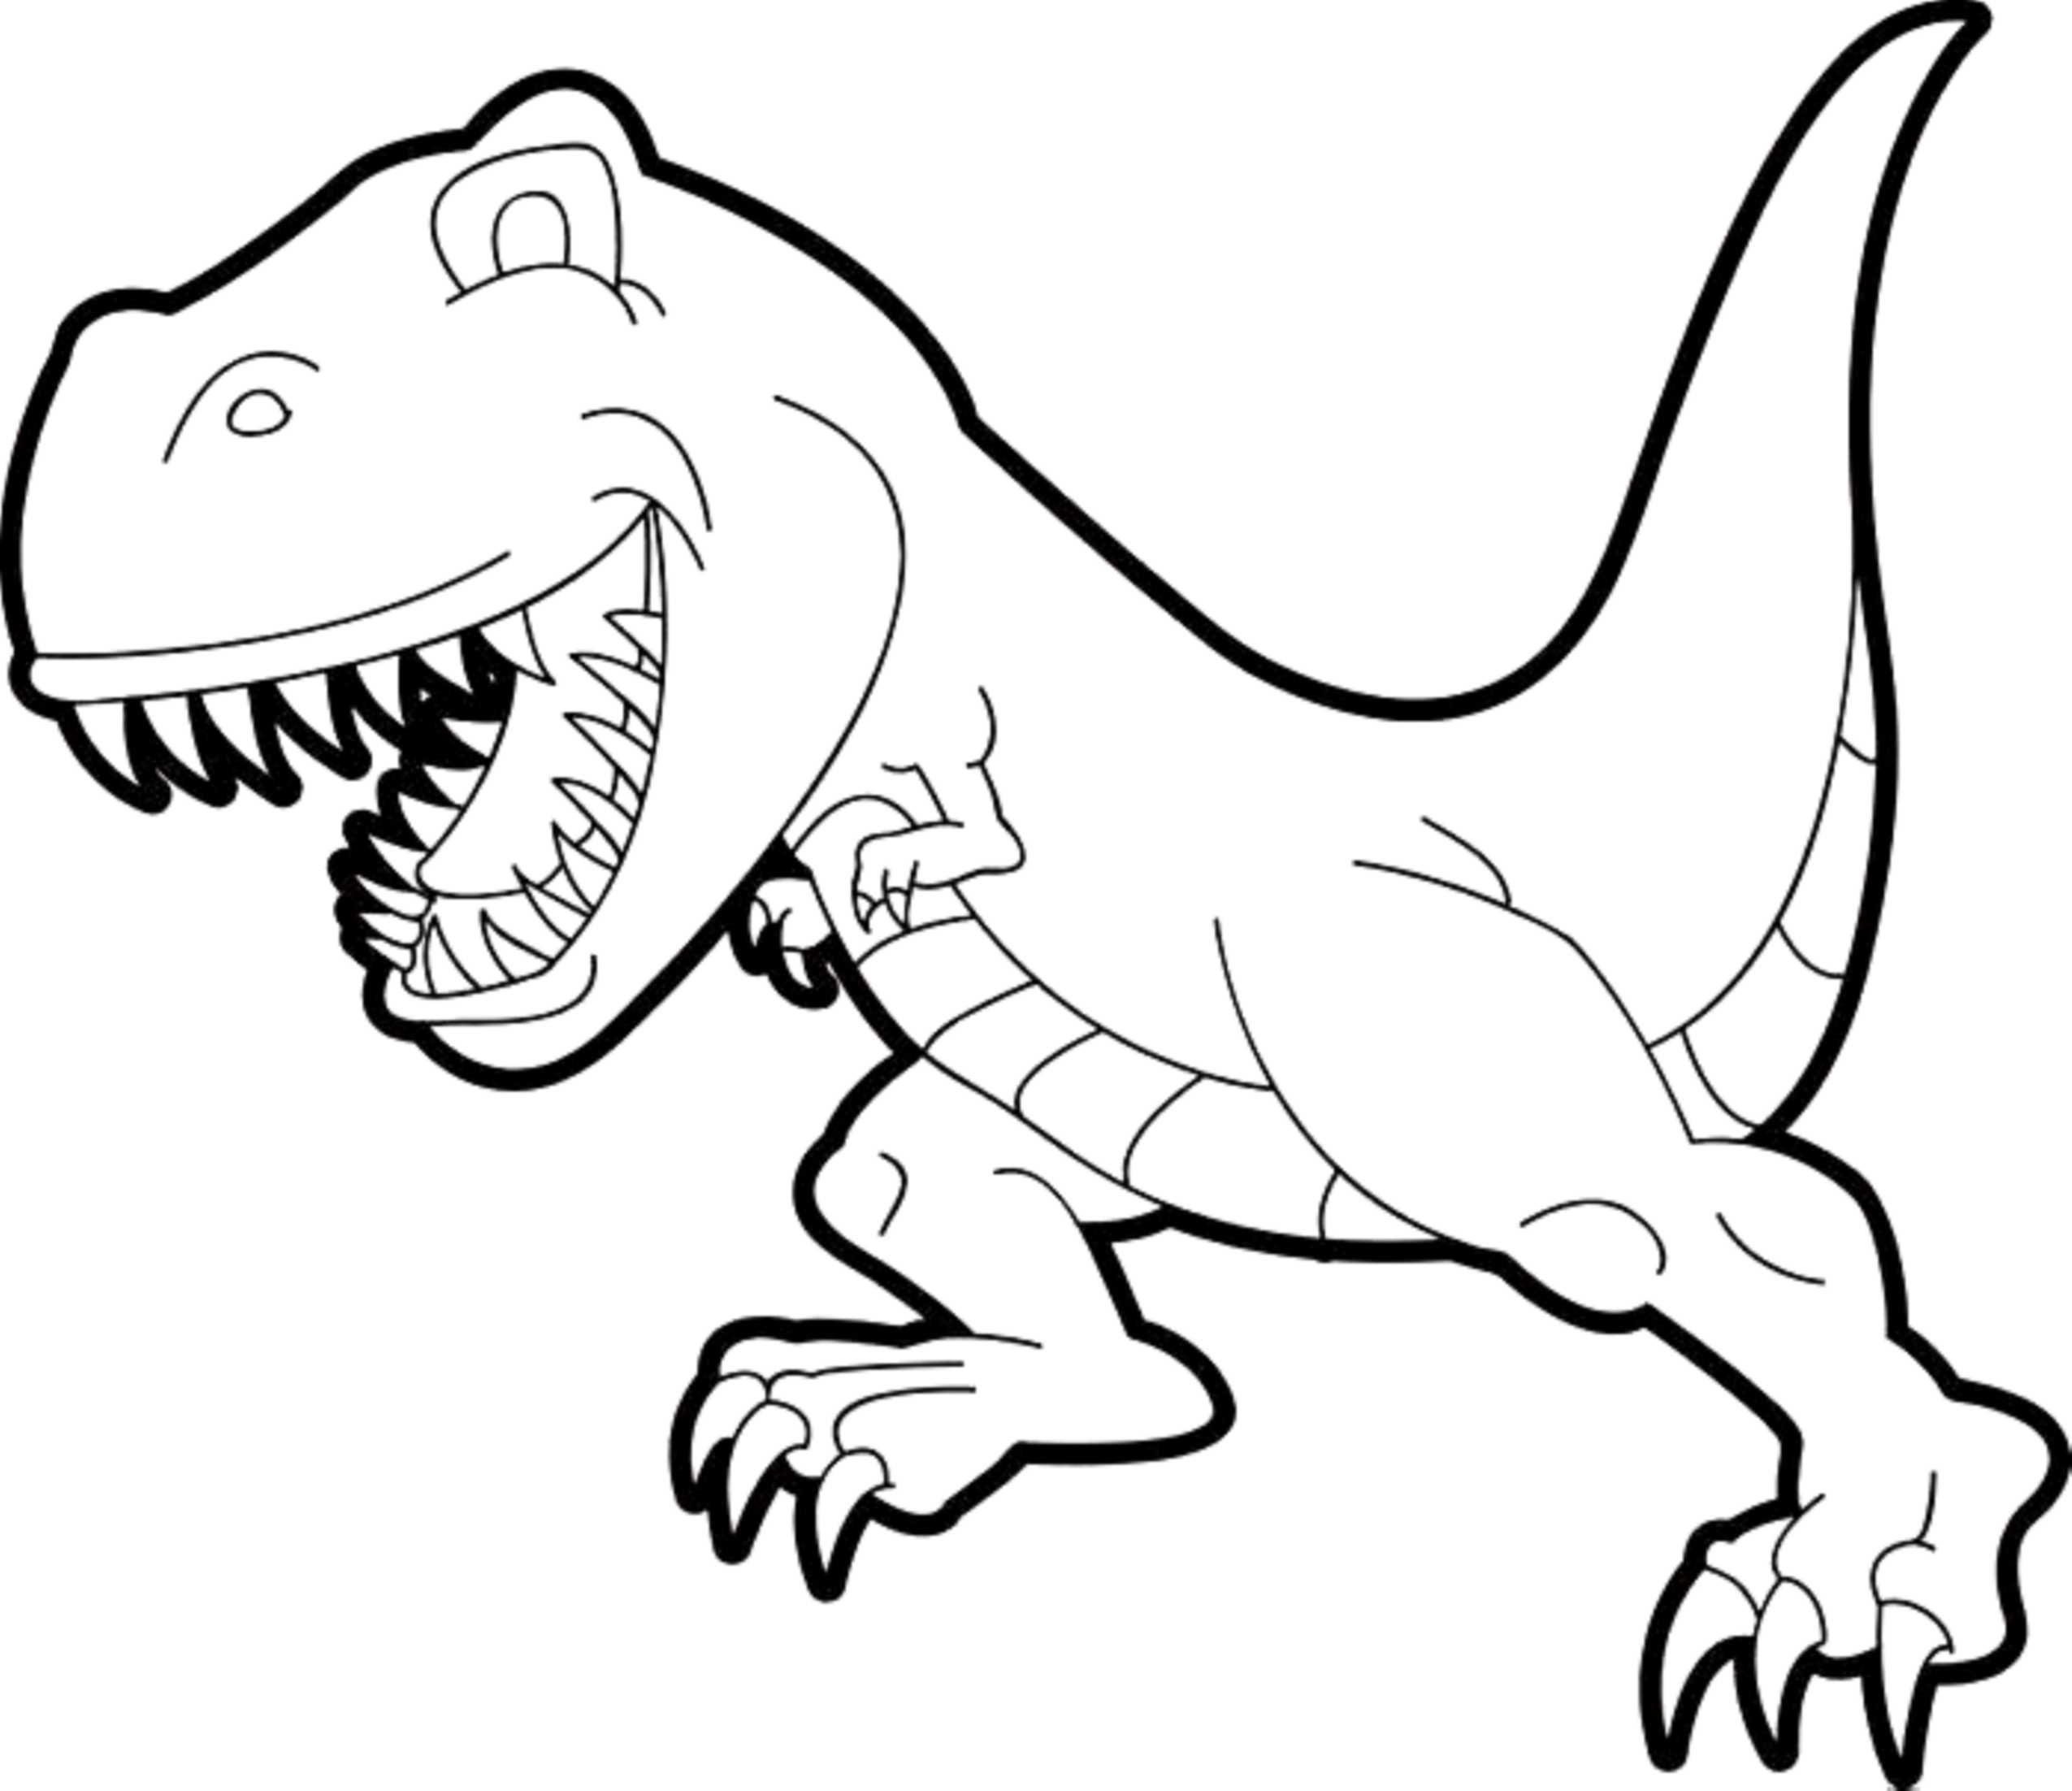 dinosaur colouring pages printable dinosaurs to download for free brachiosaurus egg colouring printable dinosaur pages